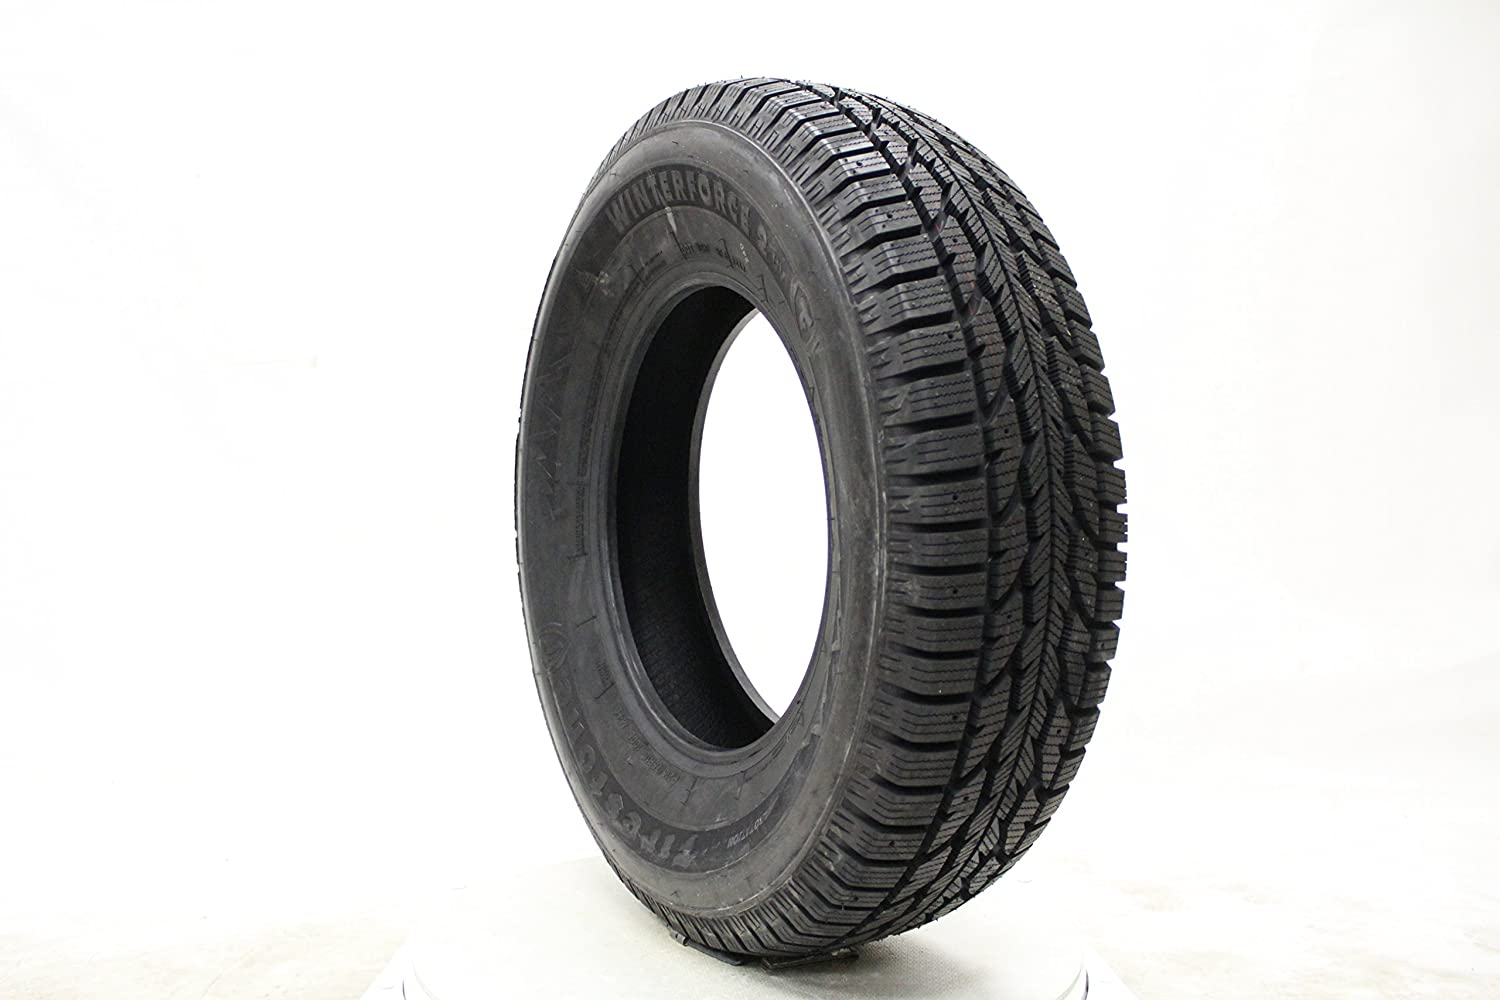 Firestone Winterforce 2 UV Studable-Winter Radial Tire - 235/65R17 104S 148300